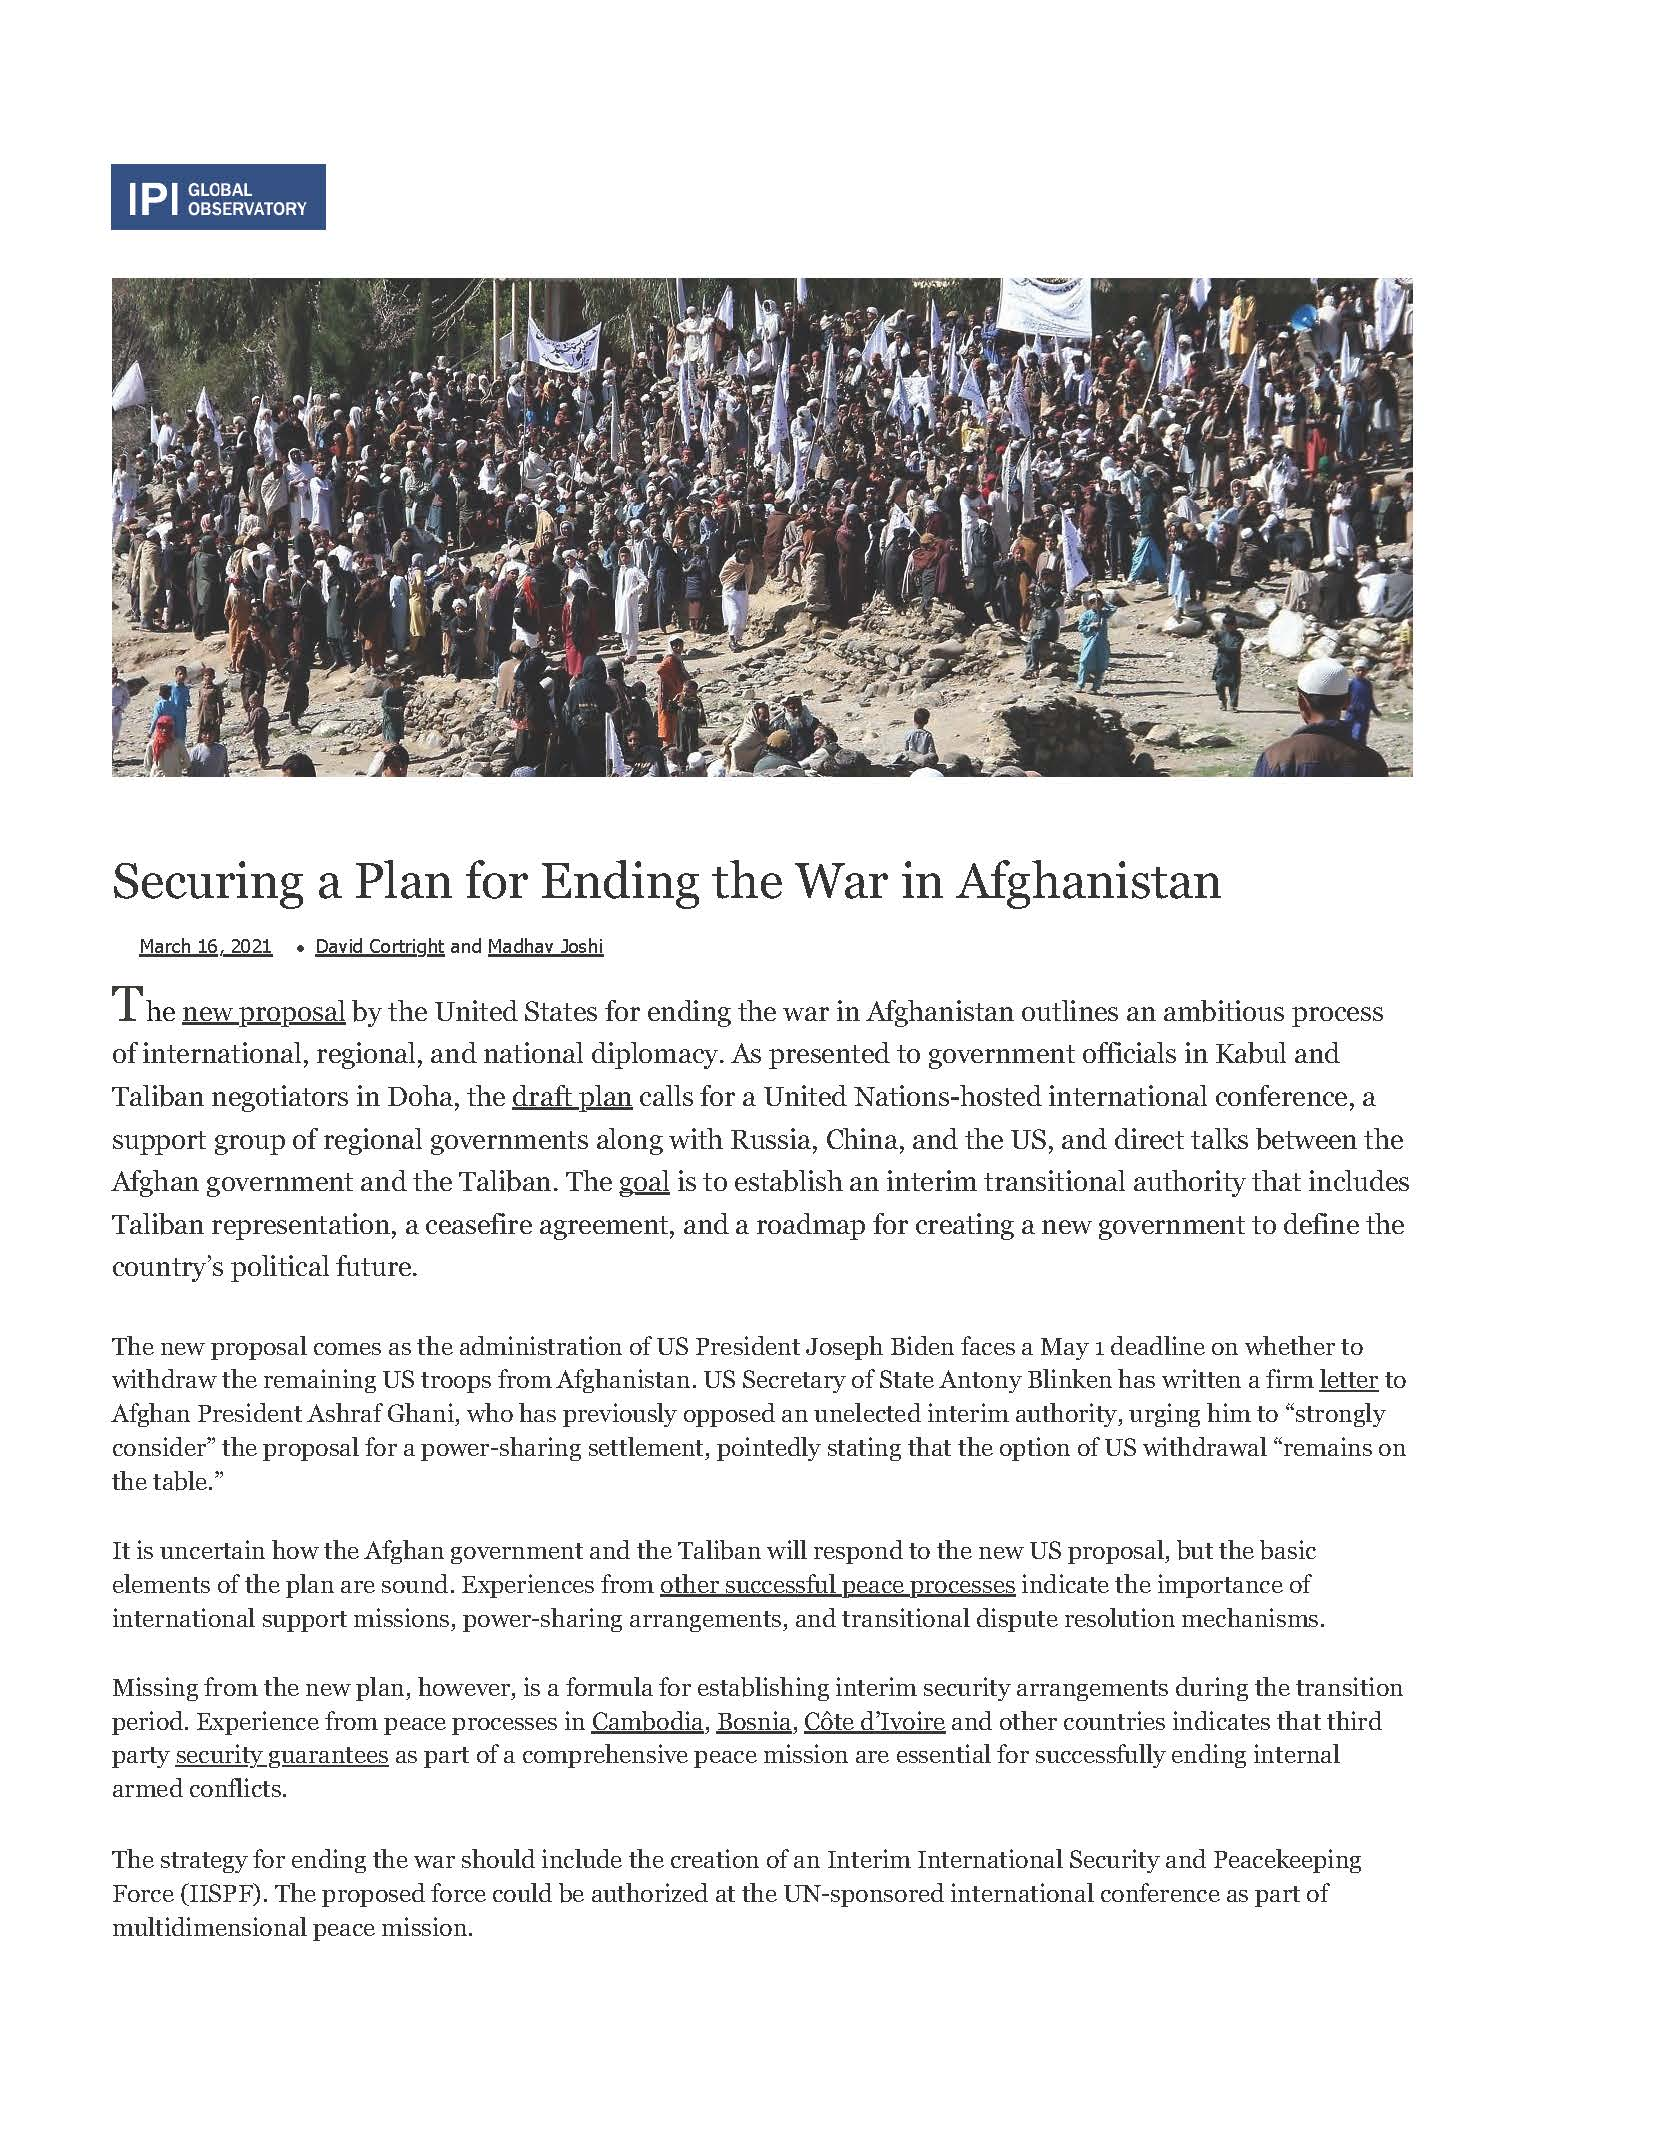 Securing a Plan for Ending the War in Afghanistan